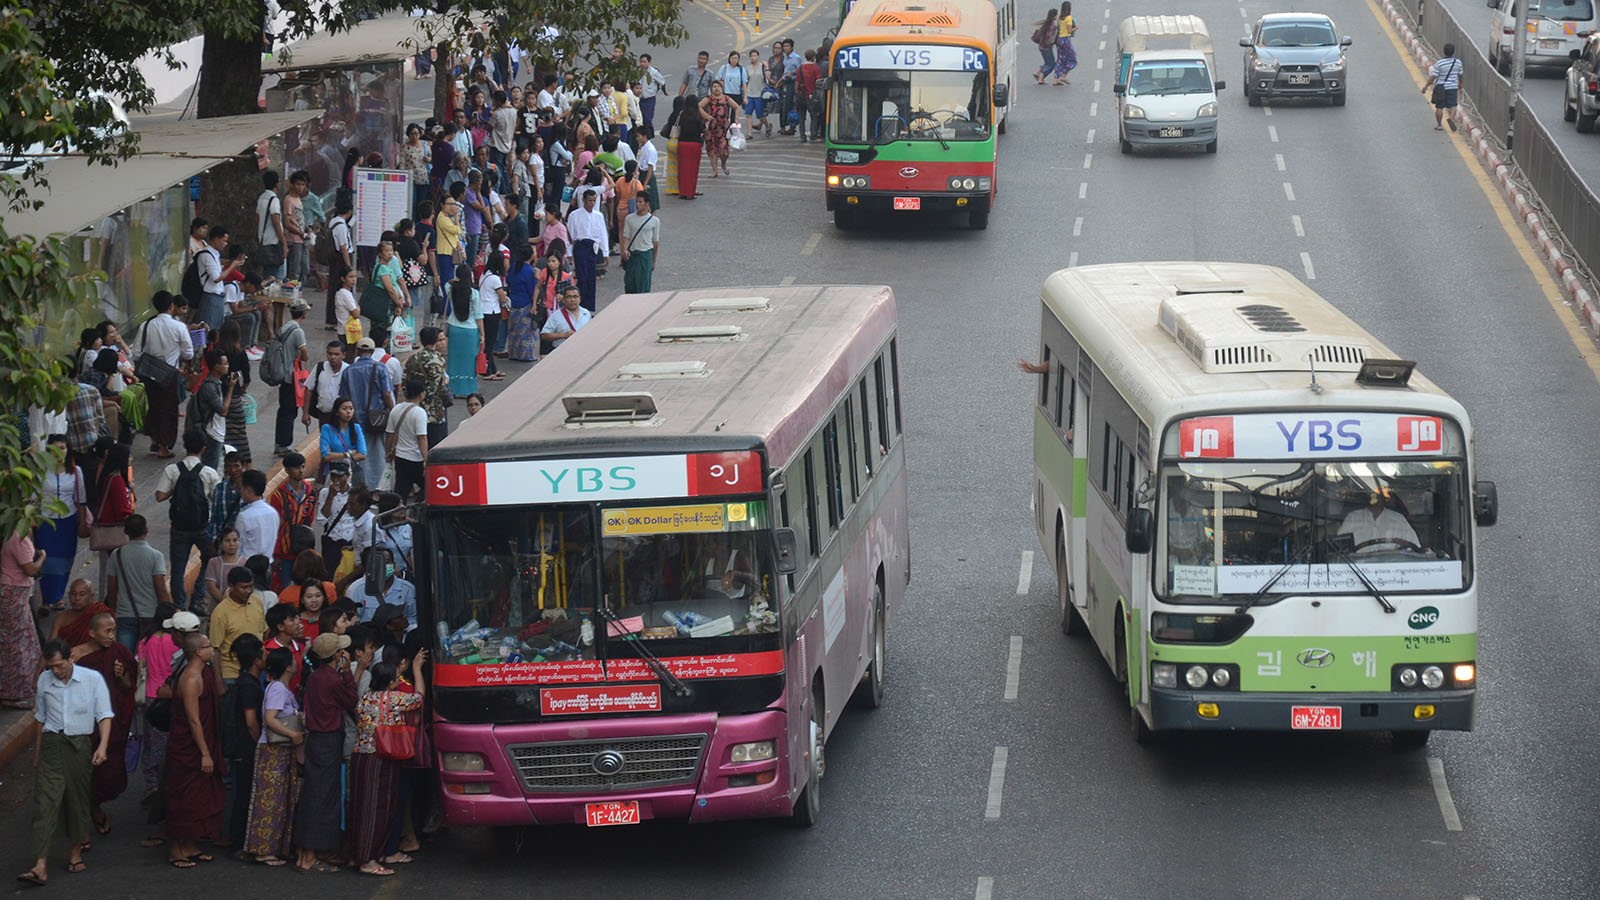 YBS provides commuter bus service that shuttles public between downtown Yangon and its suburb. Photo : Phoe Khwar